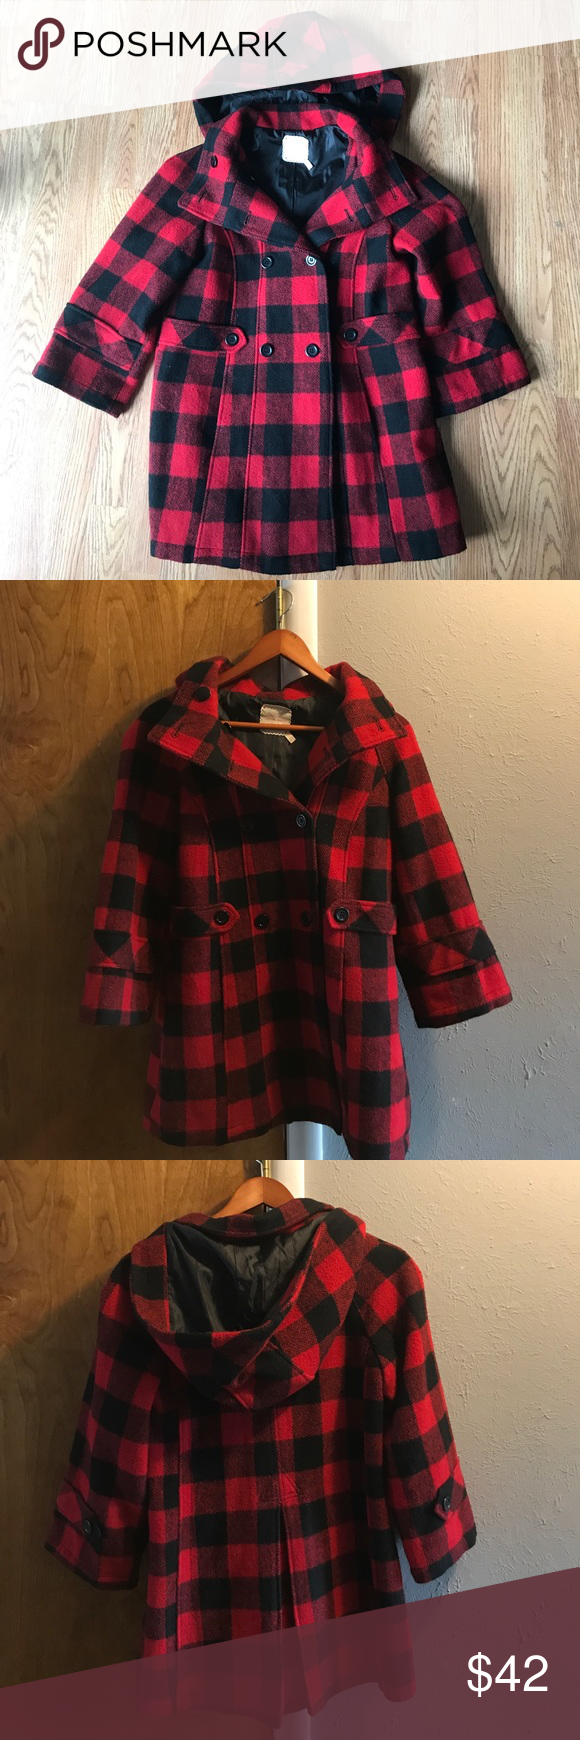 """Urban Outfitters """"Pins and Needles"""" Cape Coat Barely used Wool button up Coat with hood. Beautiful Winter staple for any closet. Urban Outfitters Jackets & Coats"""